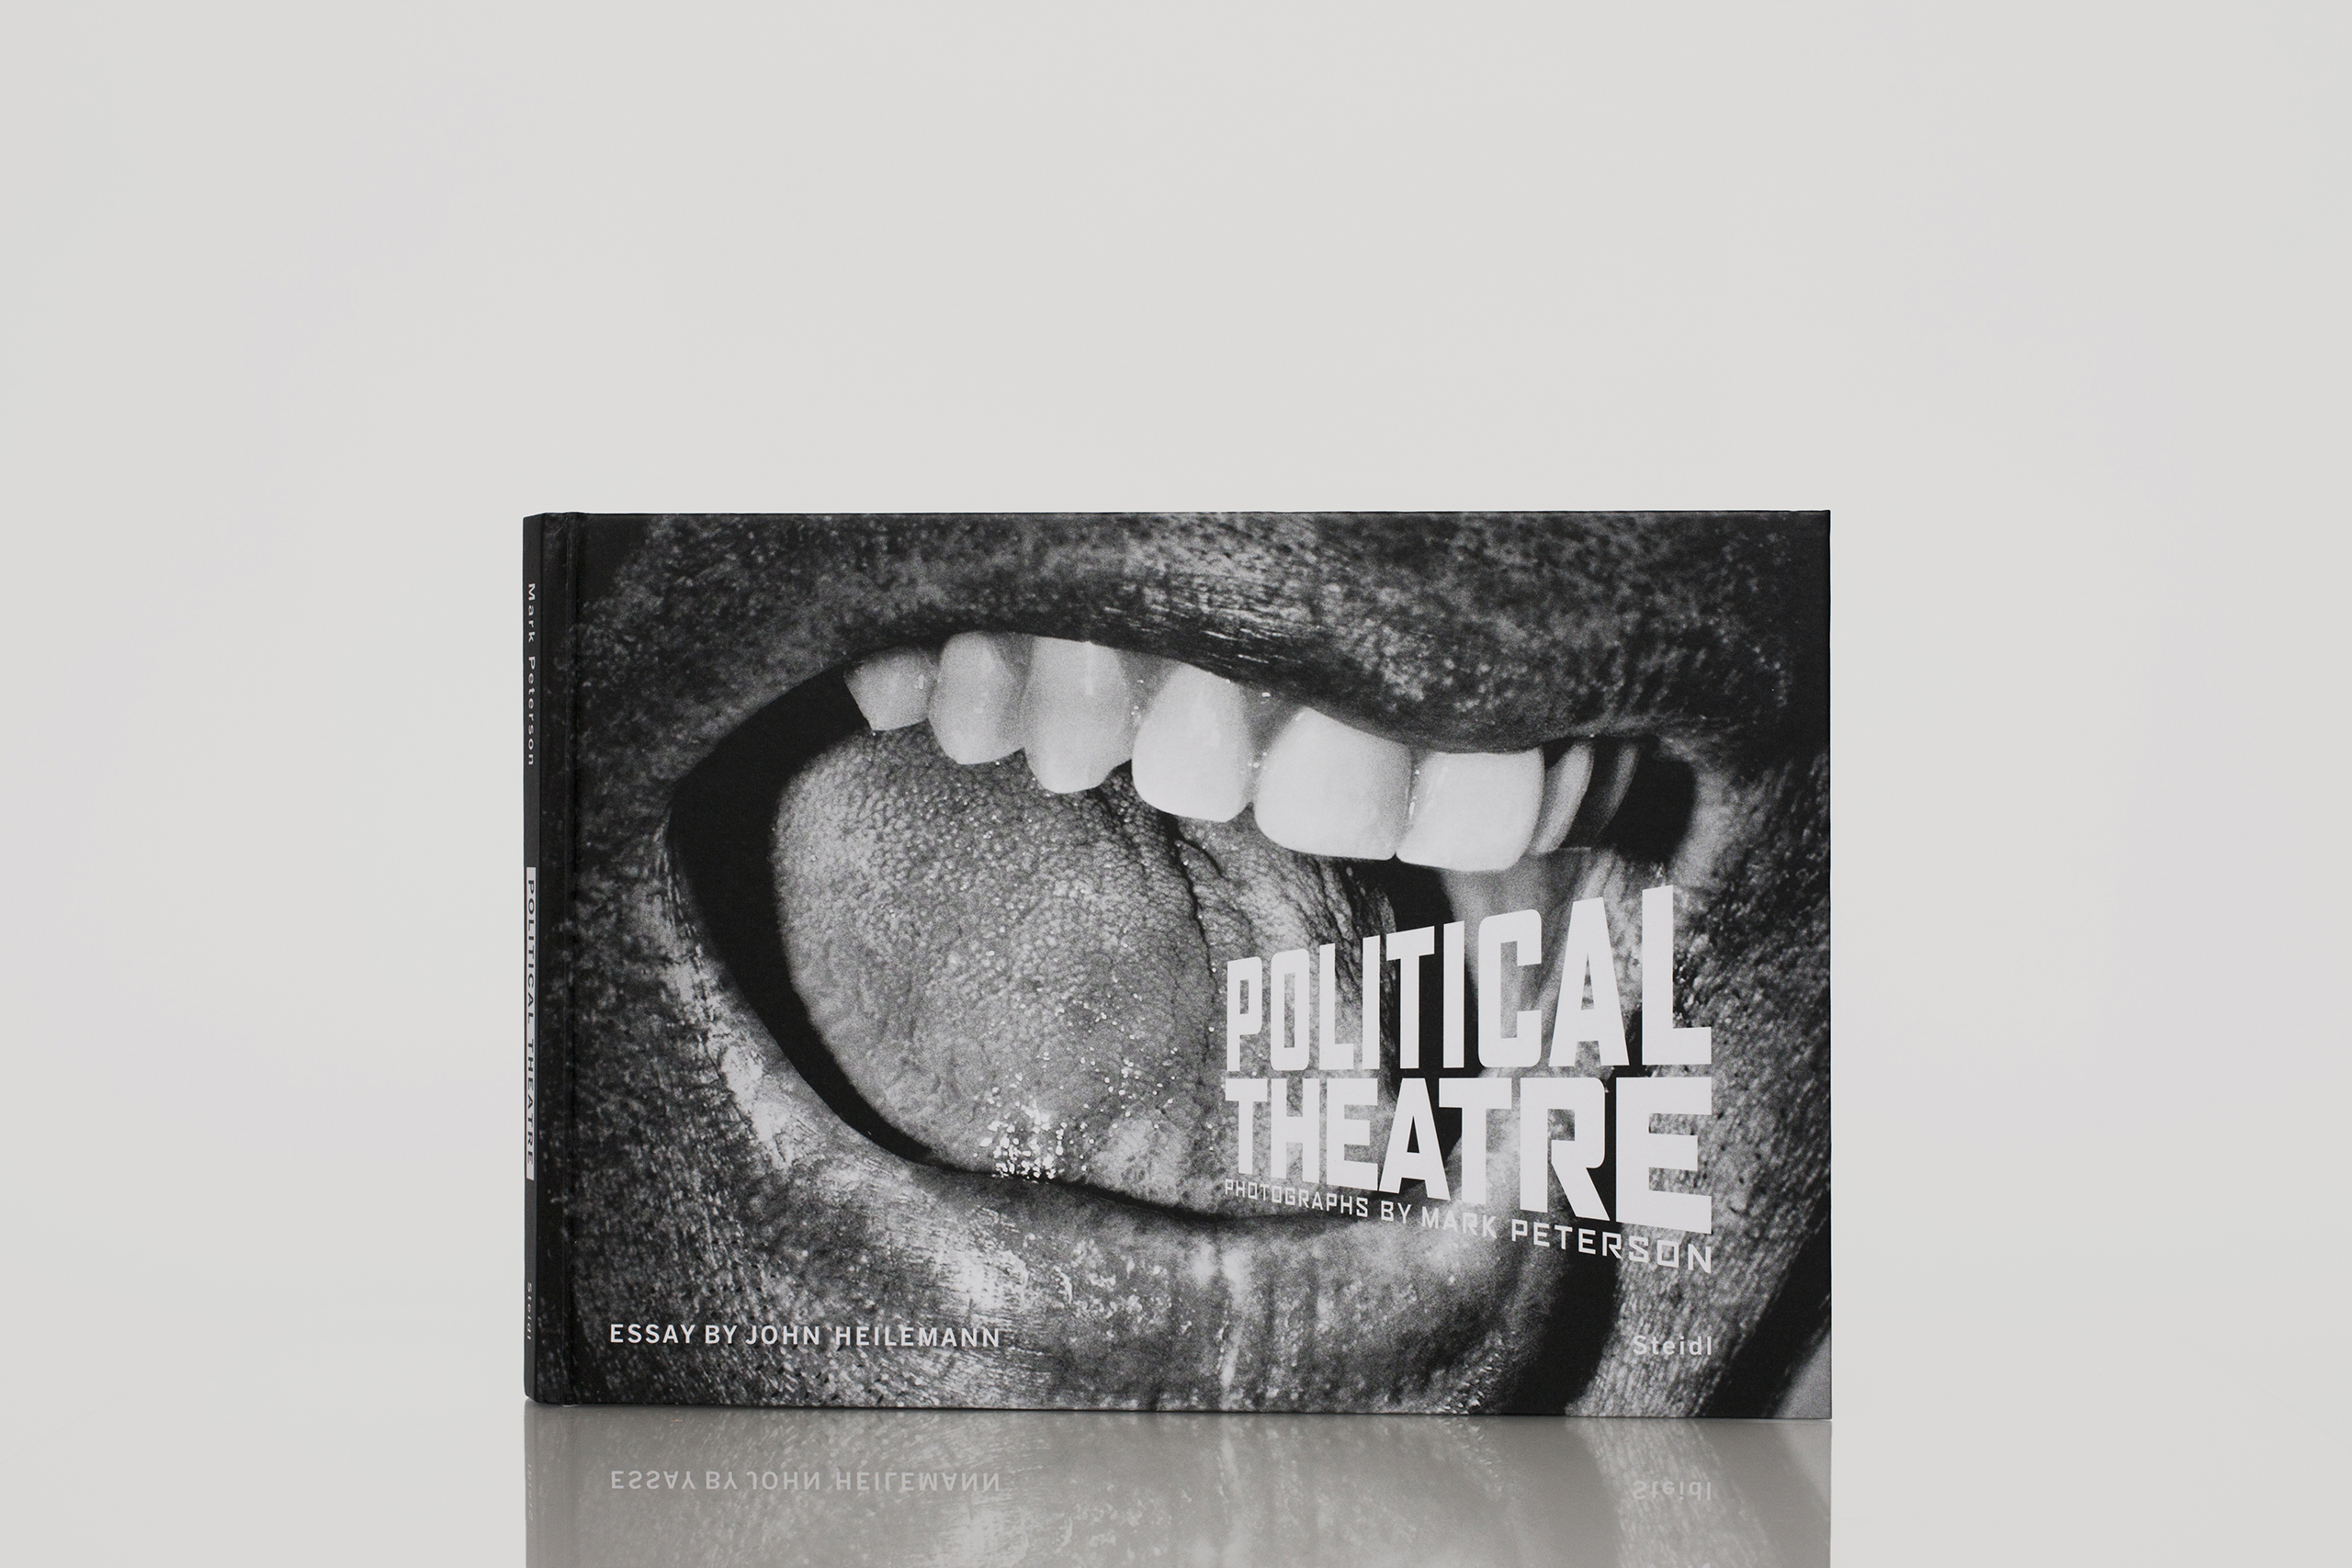 Politcal Theatre by Mark PetersonPublished by Steidl